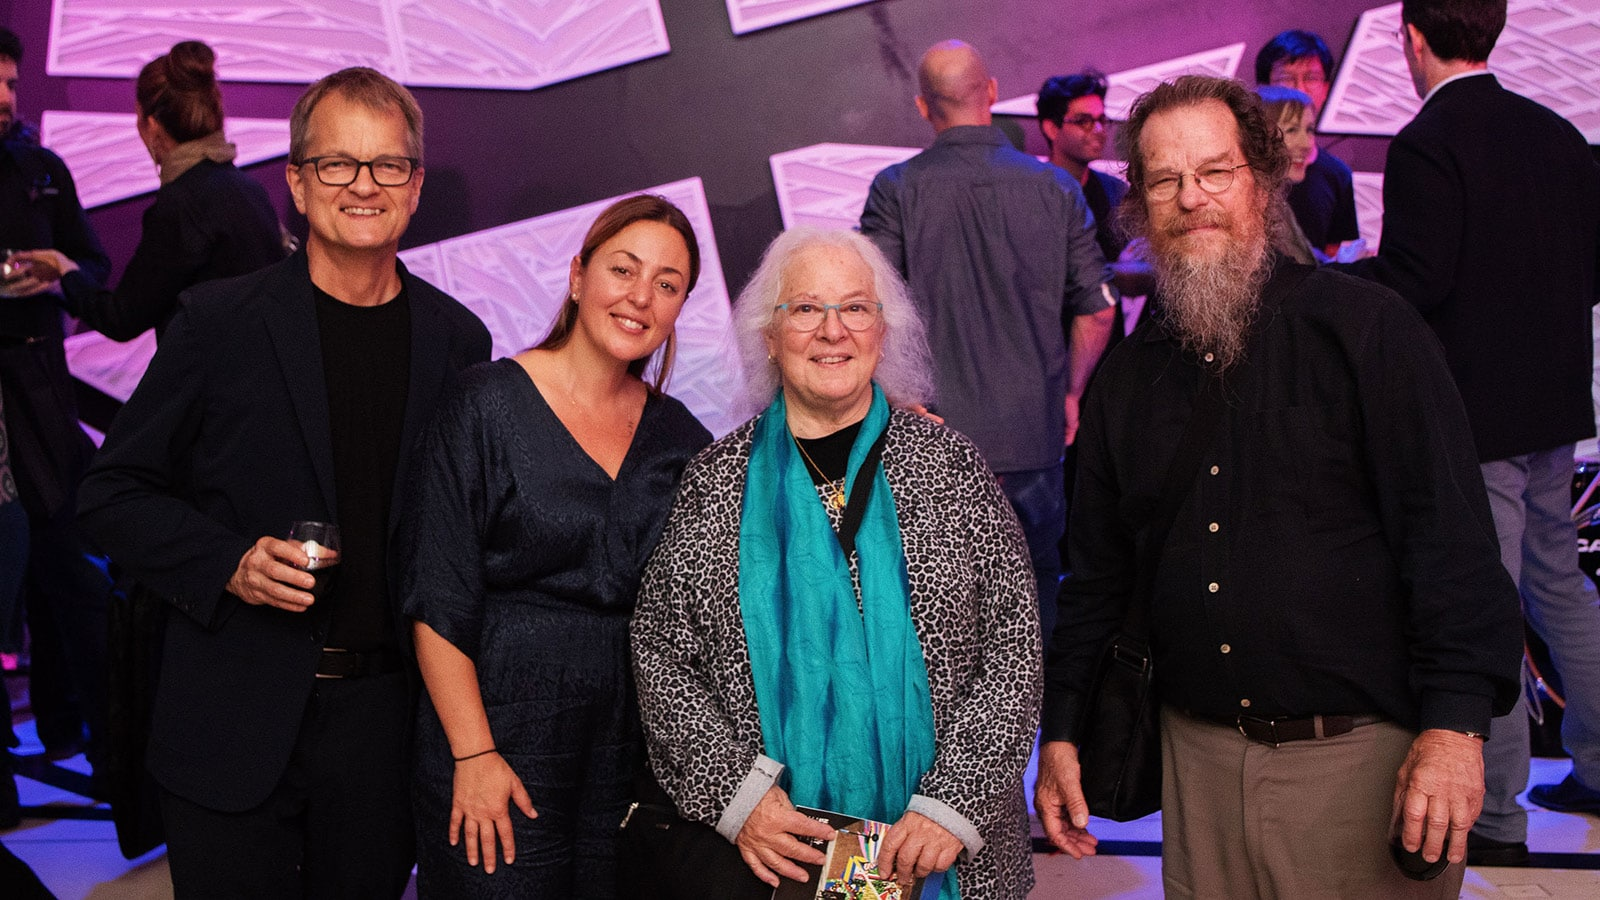 (L-R) Steve Ellison, Director, Spatial Sound, Meyer Sound; Paola Prestini, Co-founder and Artistic Director, National Sawdust; Helen Meyer and John Meyer, Co-founders, Meyer Sound